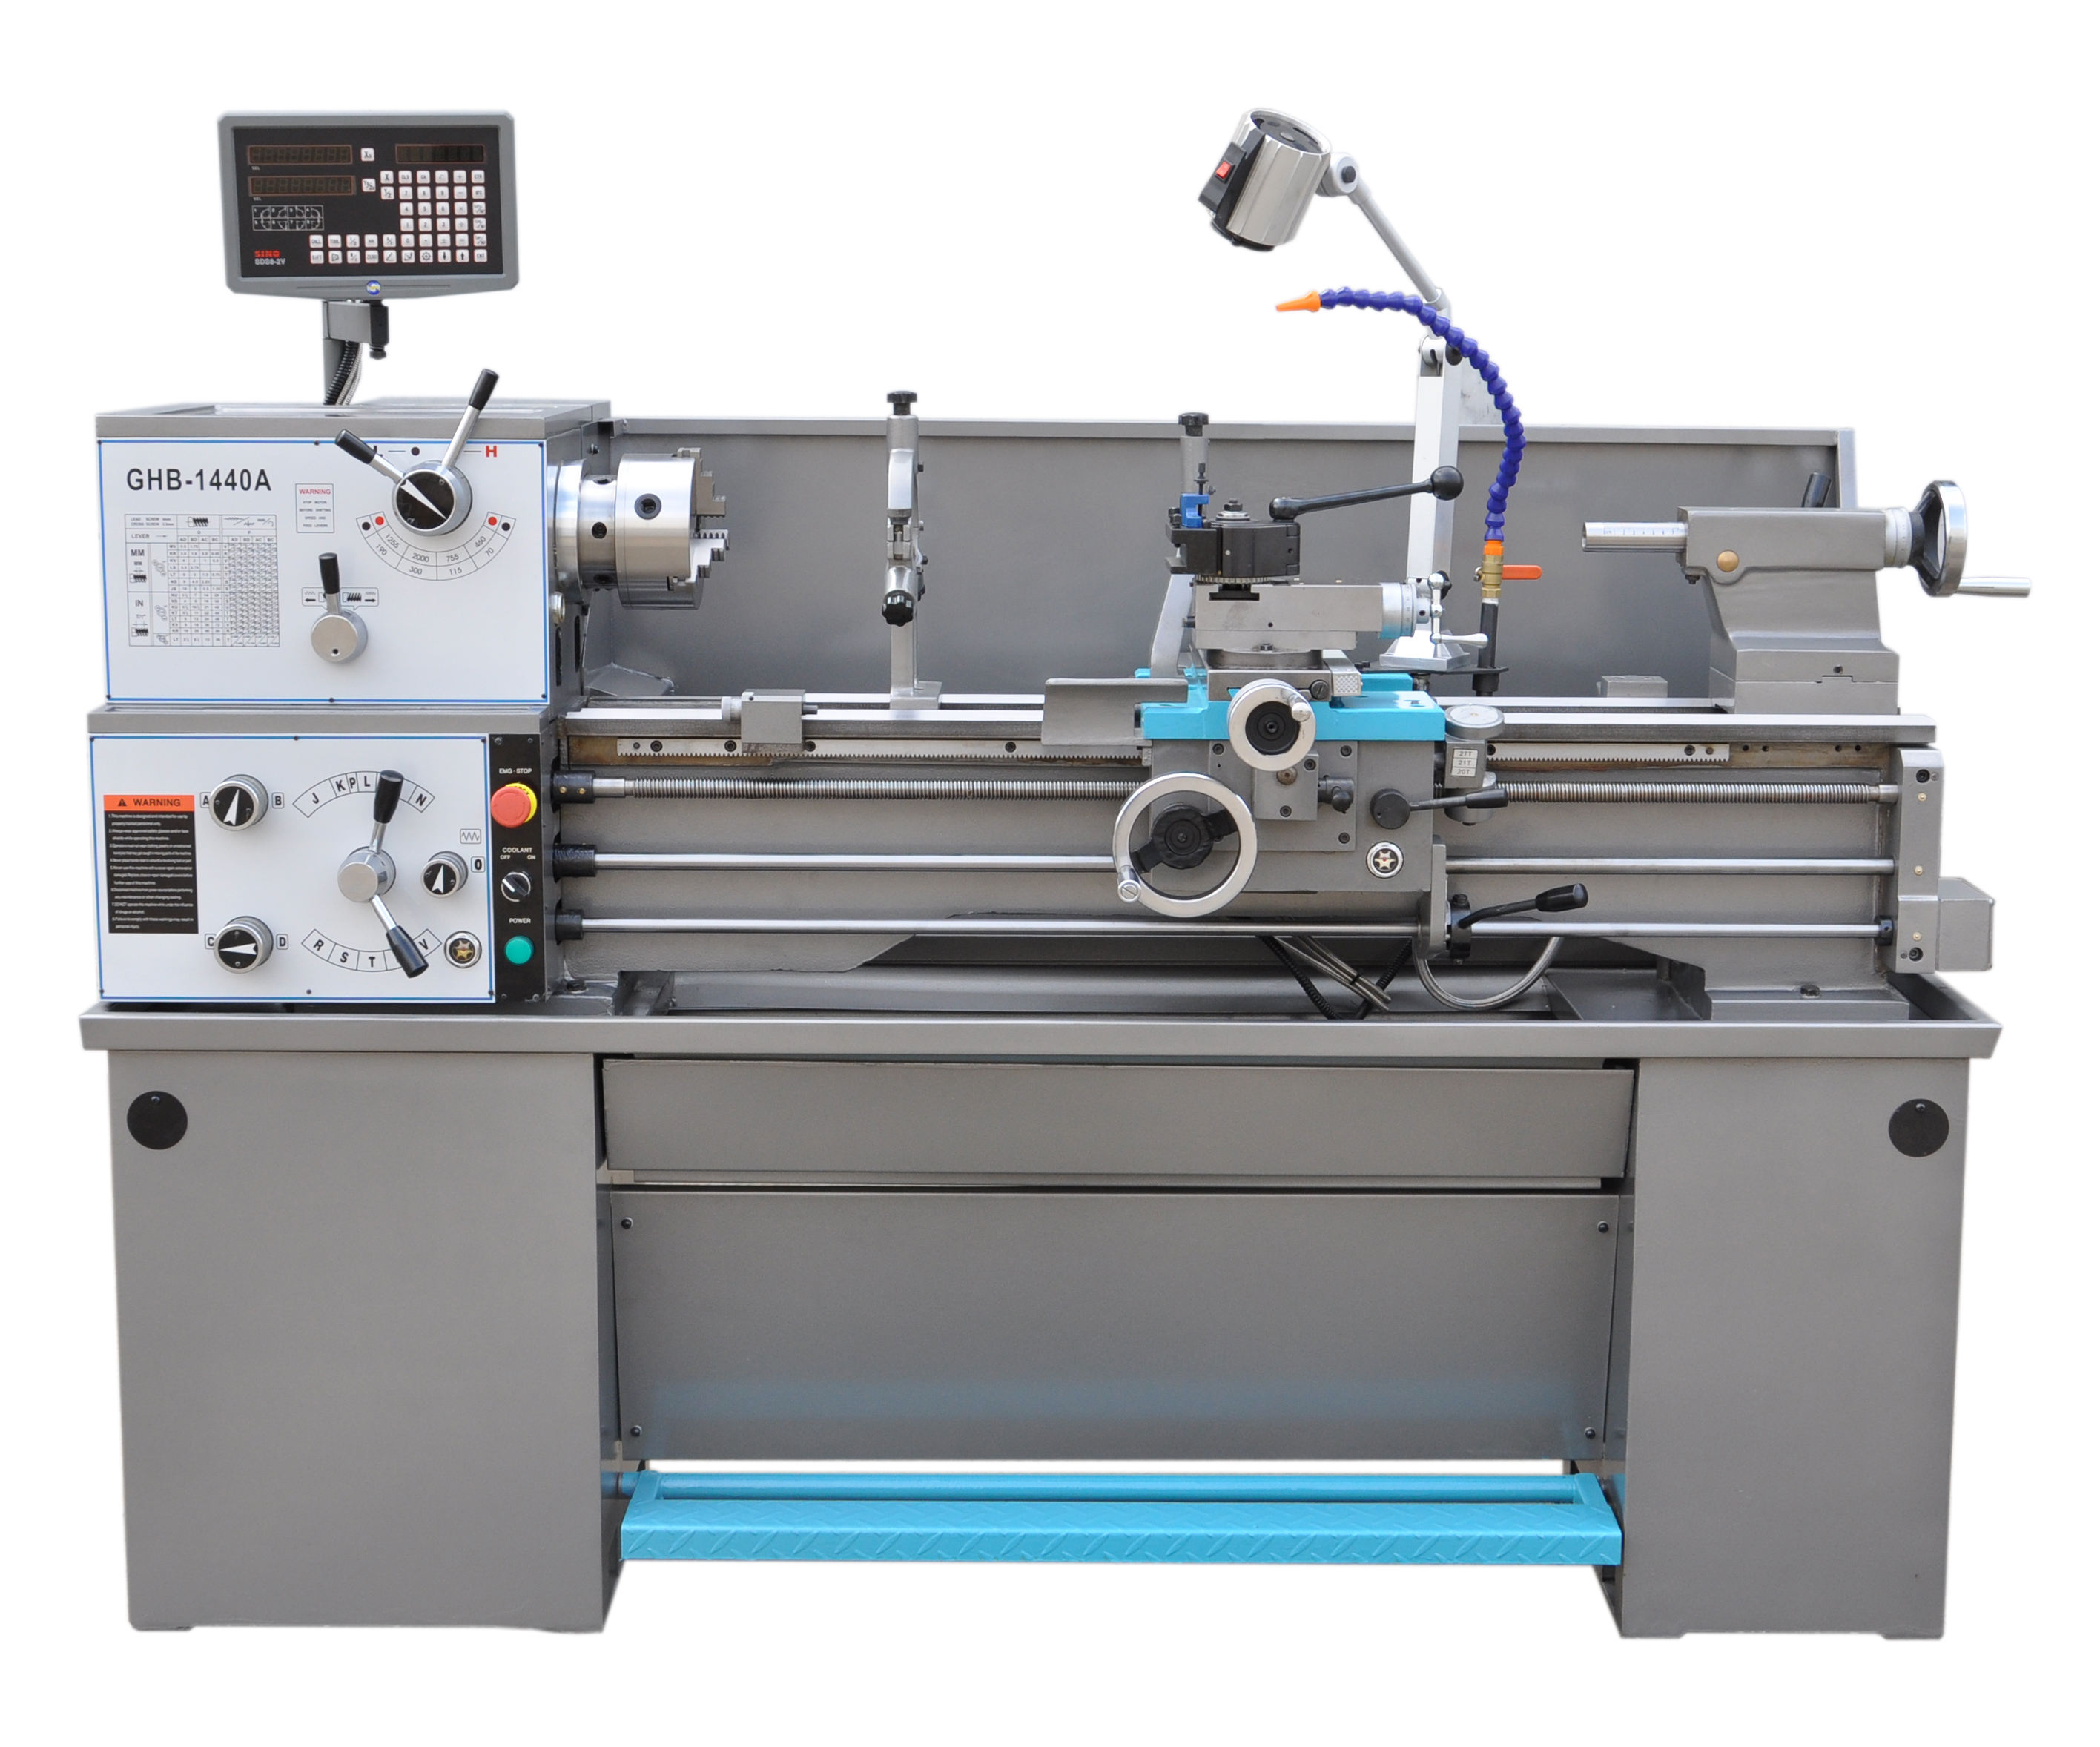 GHB-1340A bench lathes made in China